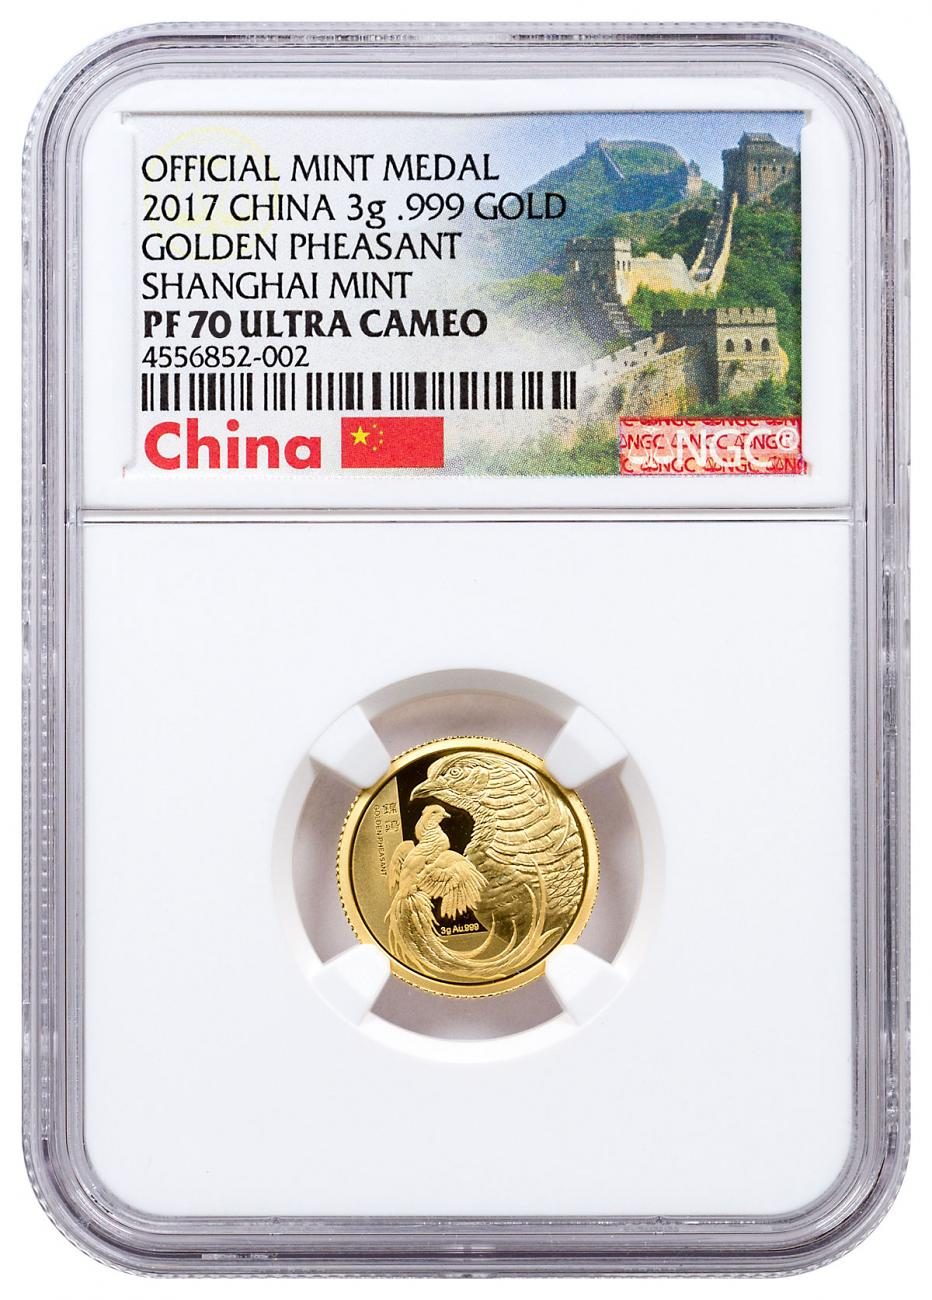 2017 China Golden Pheasant - 3 g Gold Proof NGC PF70 UC Exclusive Great Wall Label